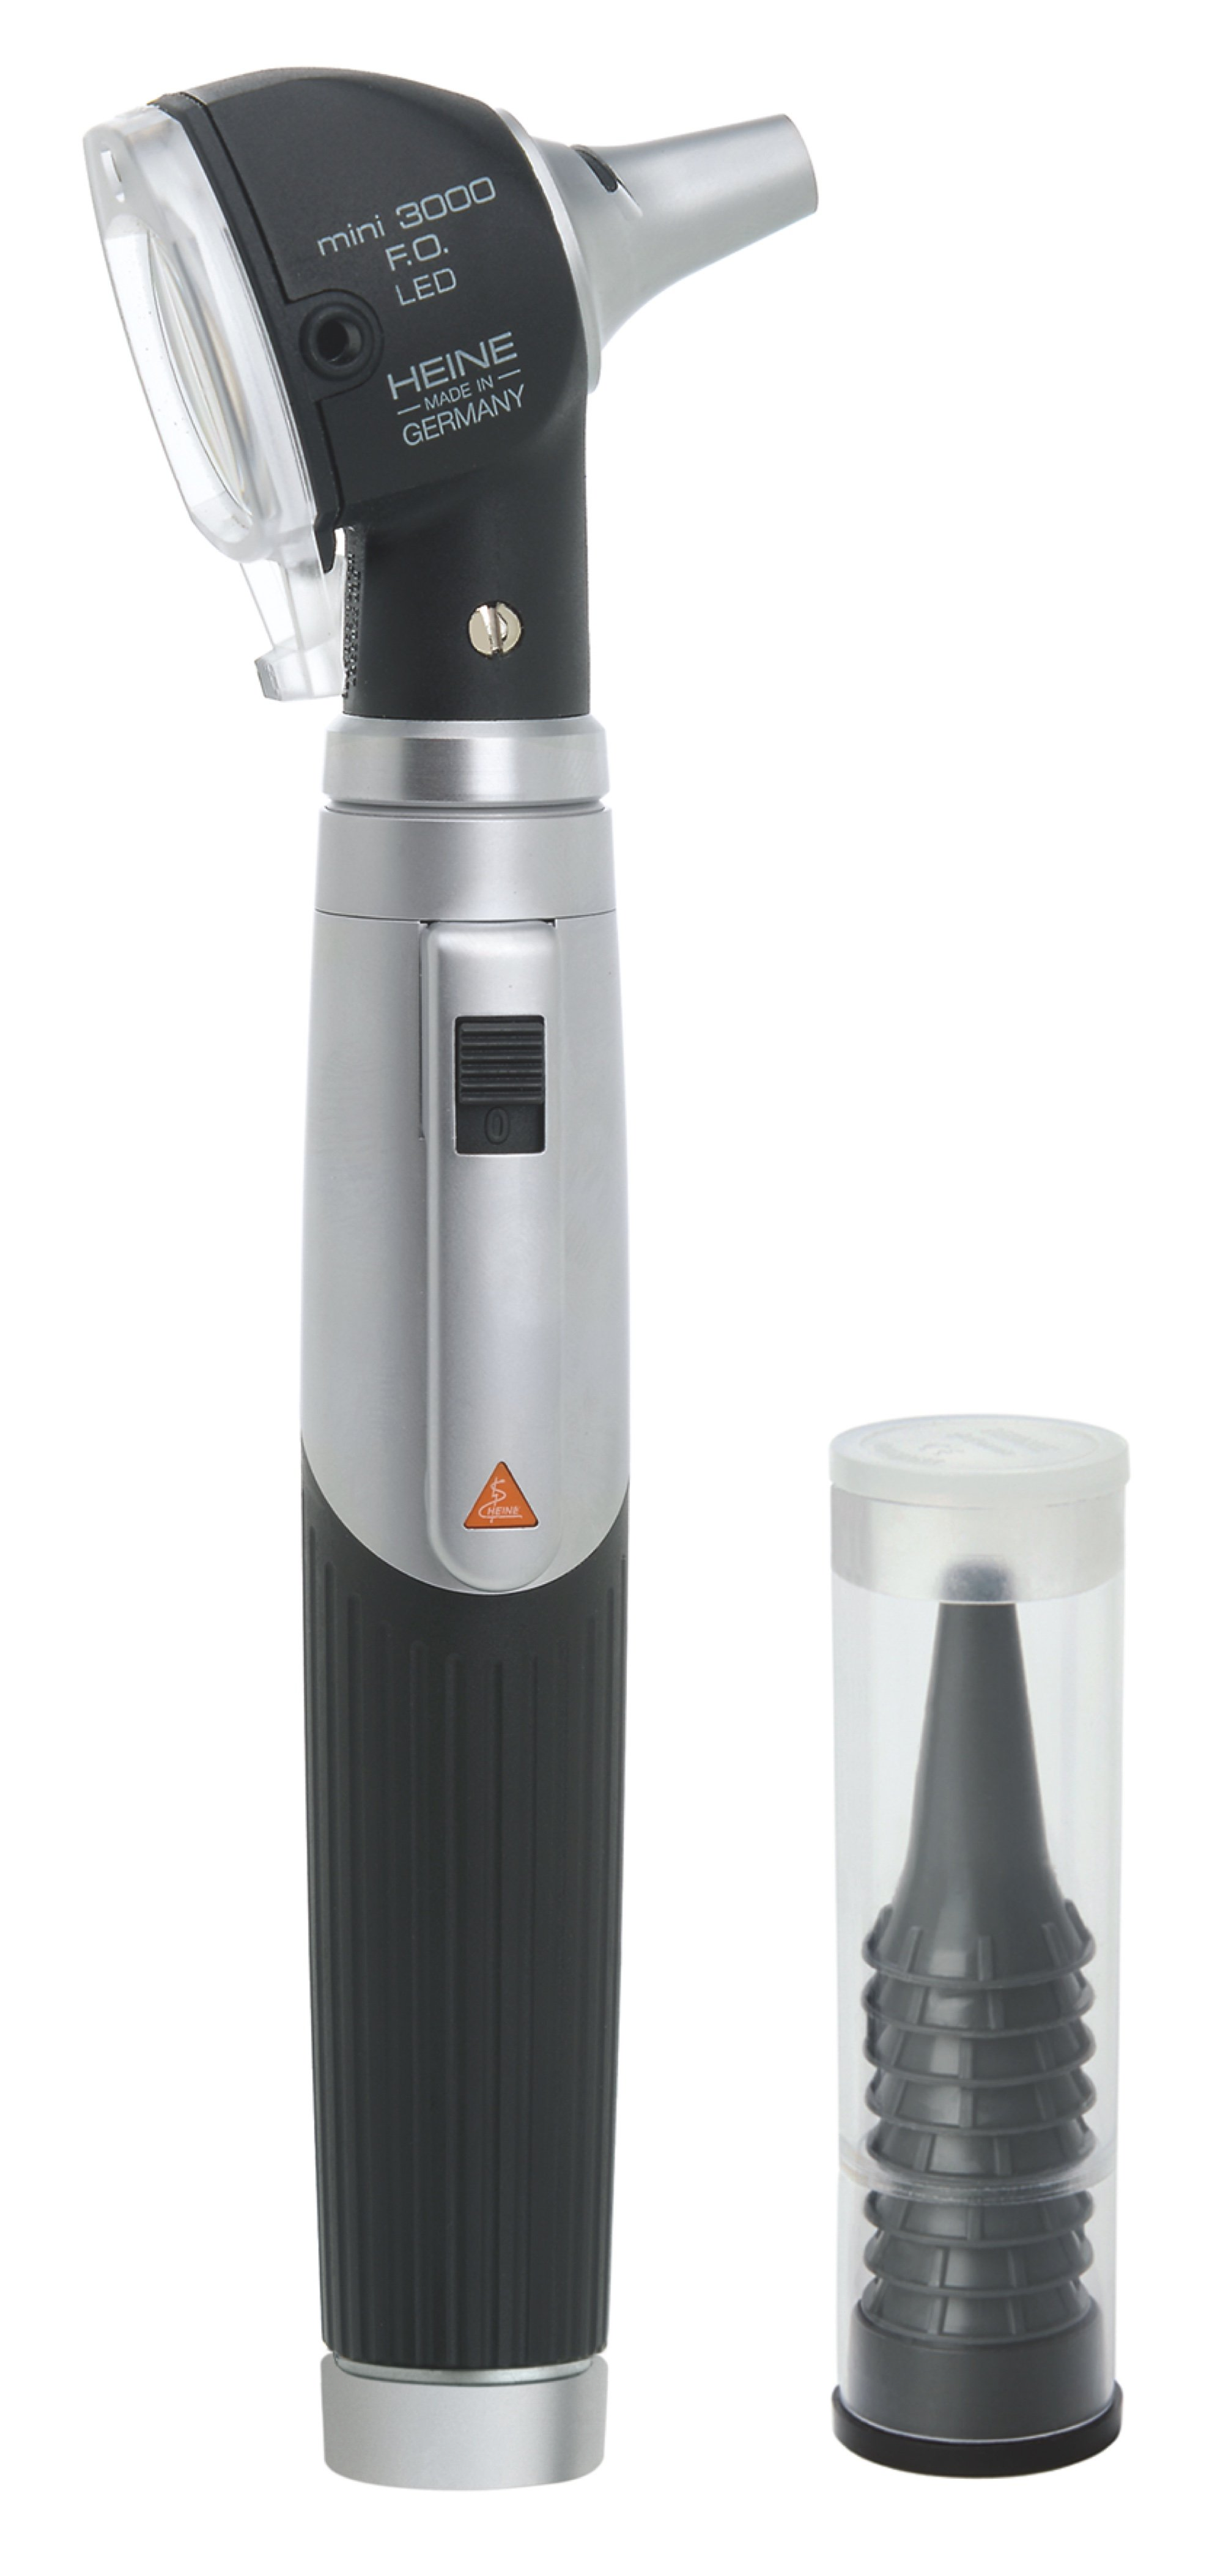 HEINE mini3000 LED Otoscope with rechargeable handle